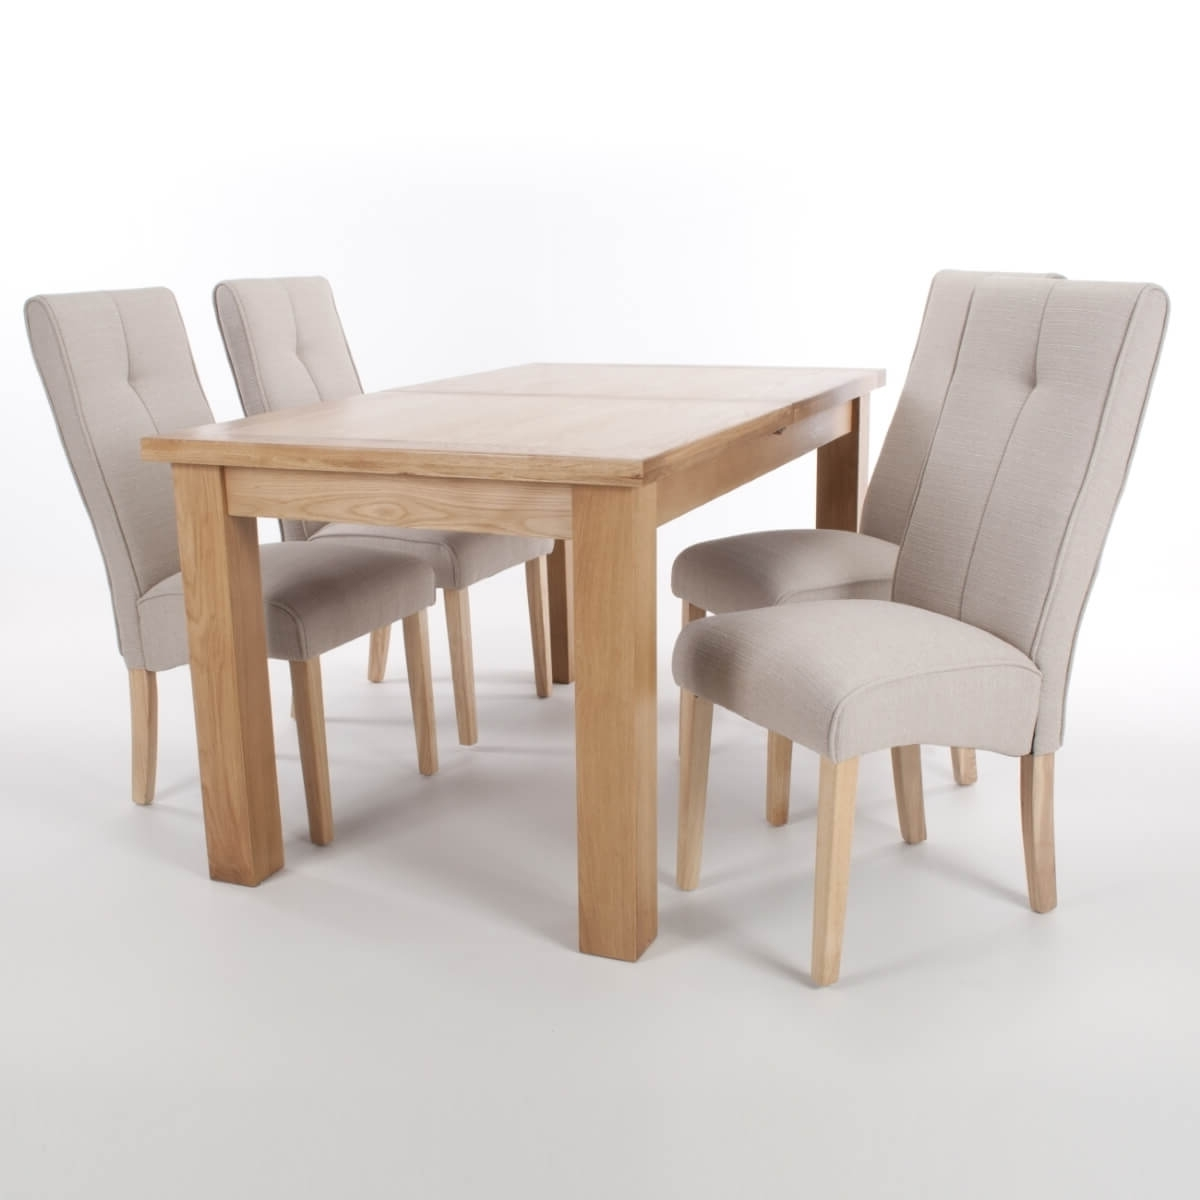 Cream And Oak Dining Tables Inside Most Up To Date Dining Set – Solid Oak Extending Dining Table And 4 Linea Cream (View 5 of 25)